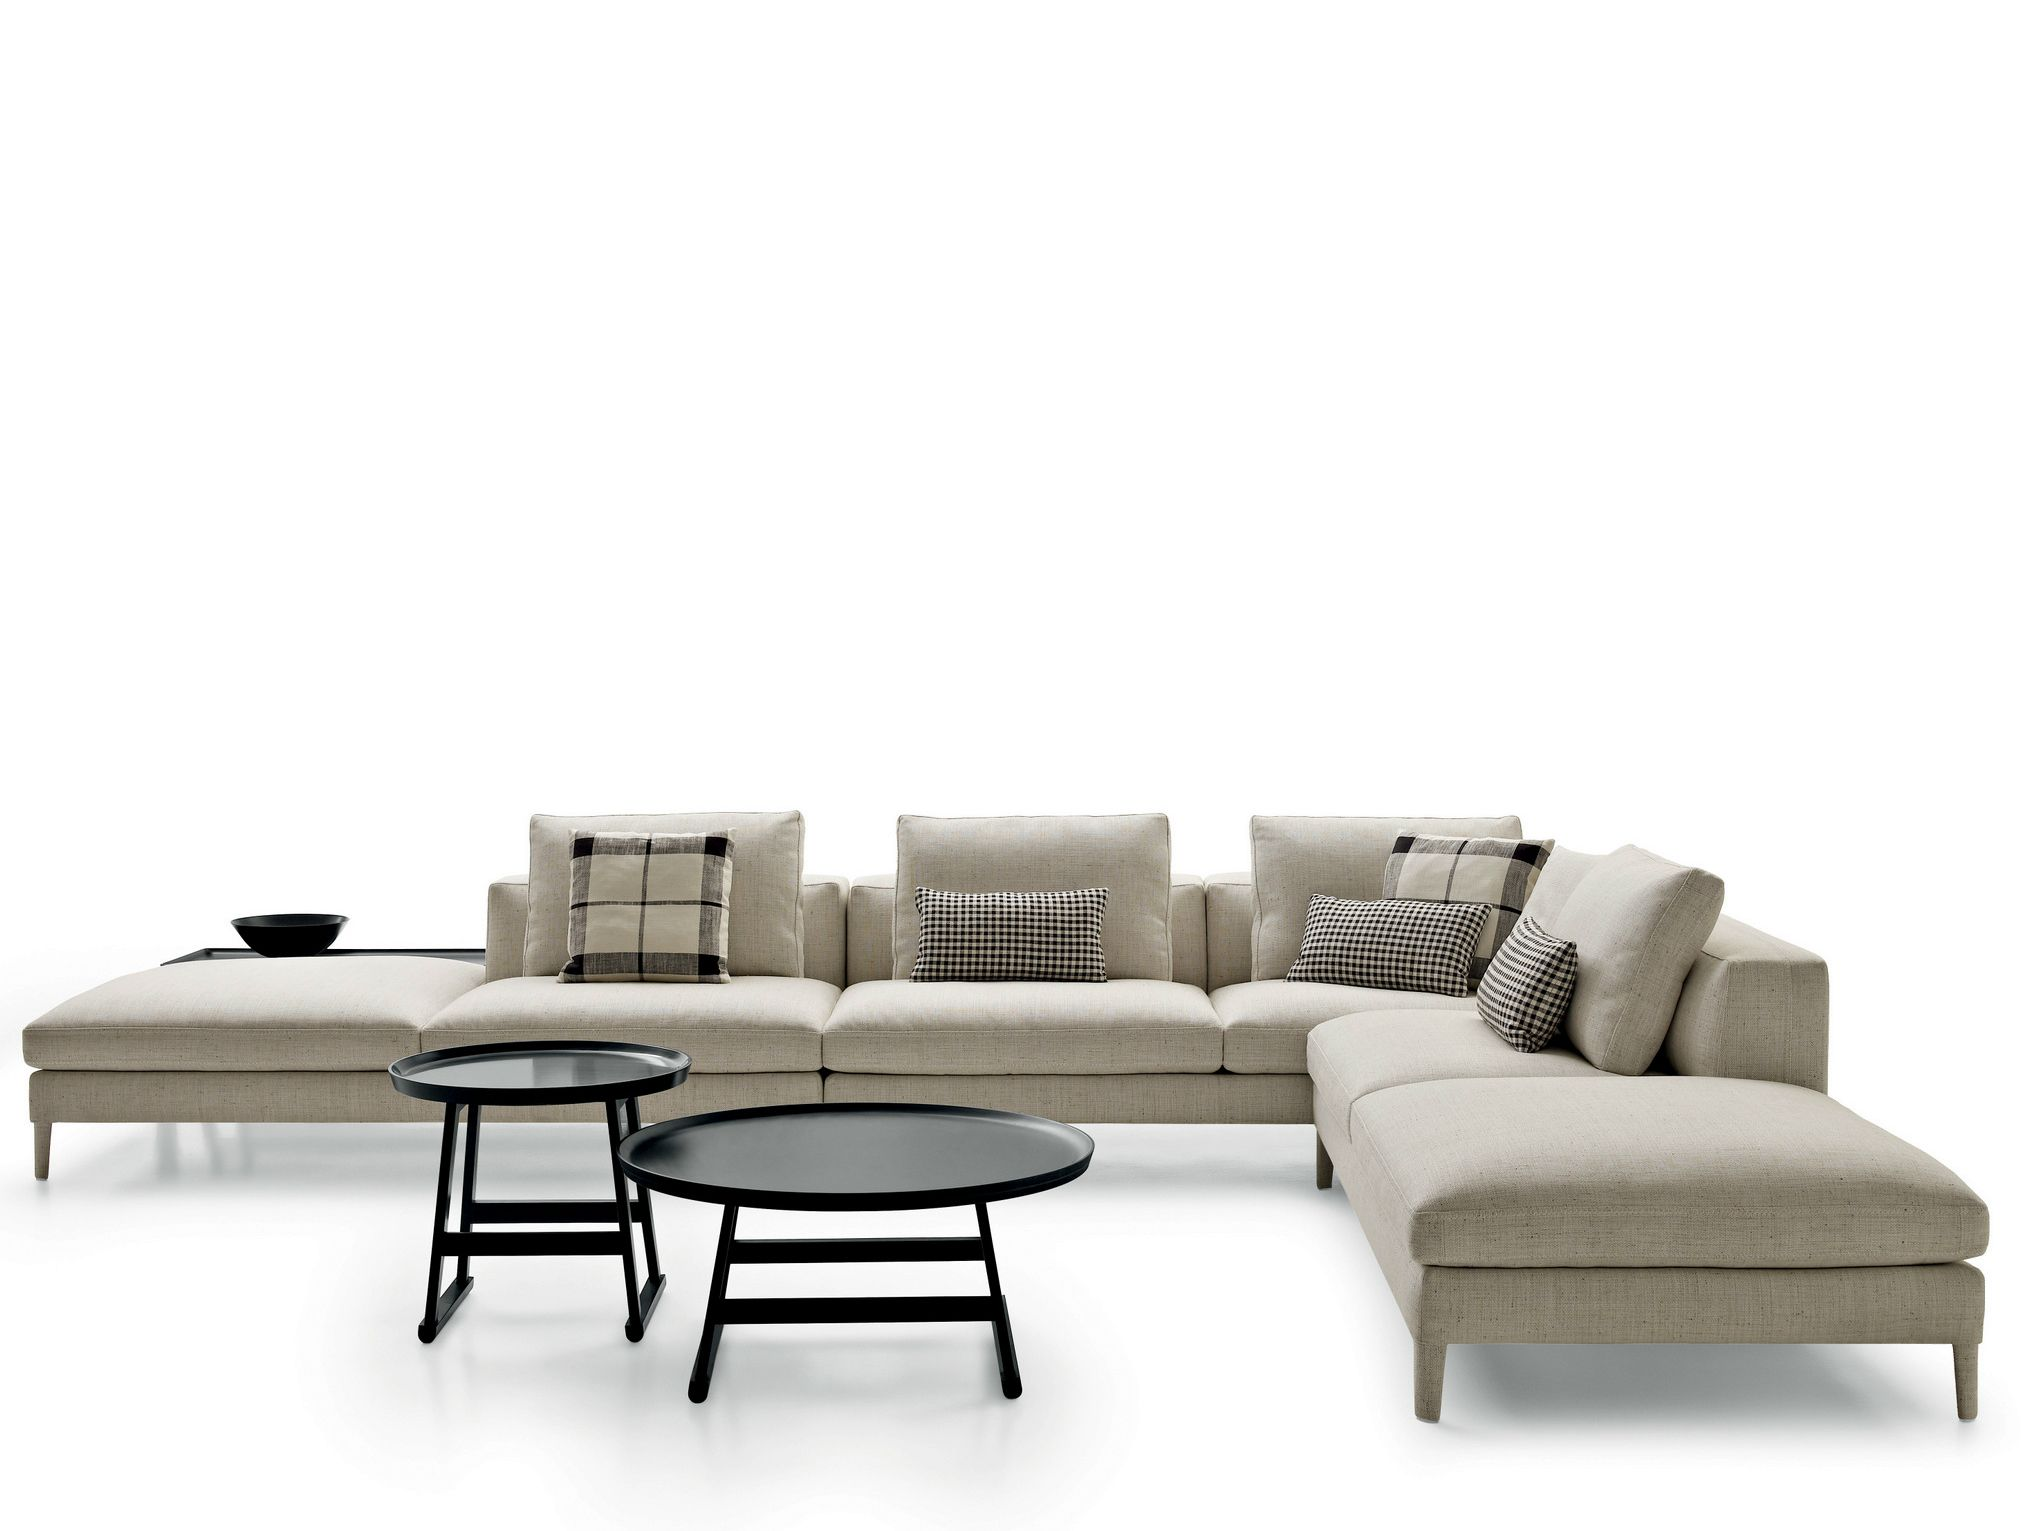 Corner sectional upholstered fabric sofa Dives Collection by